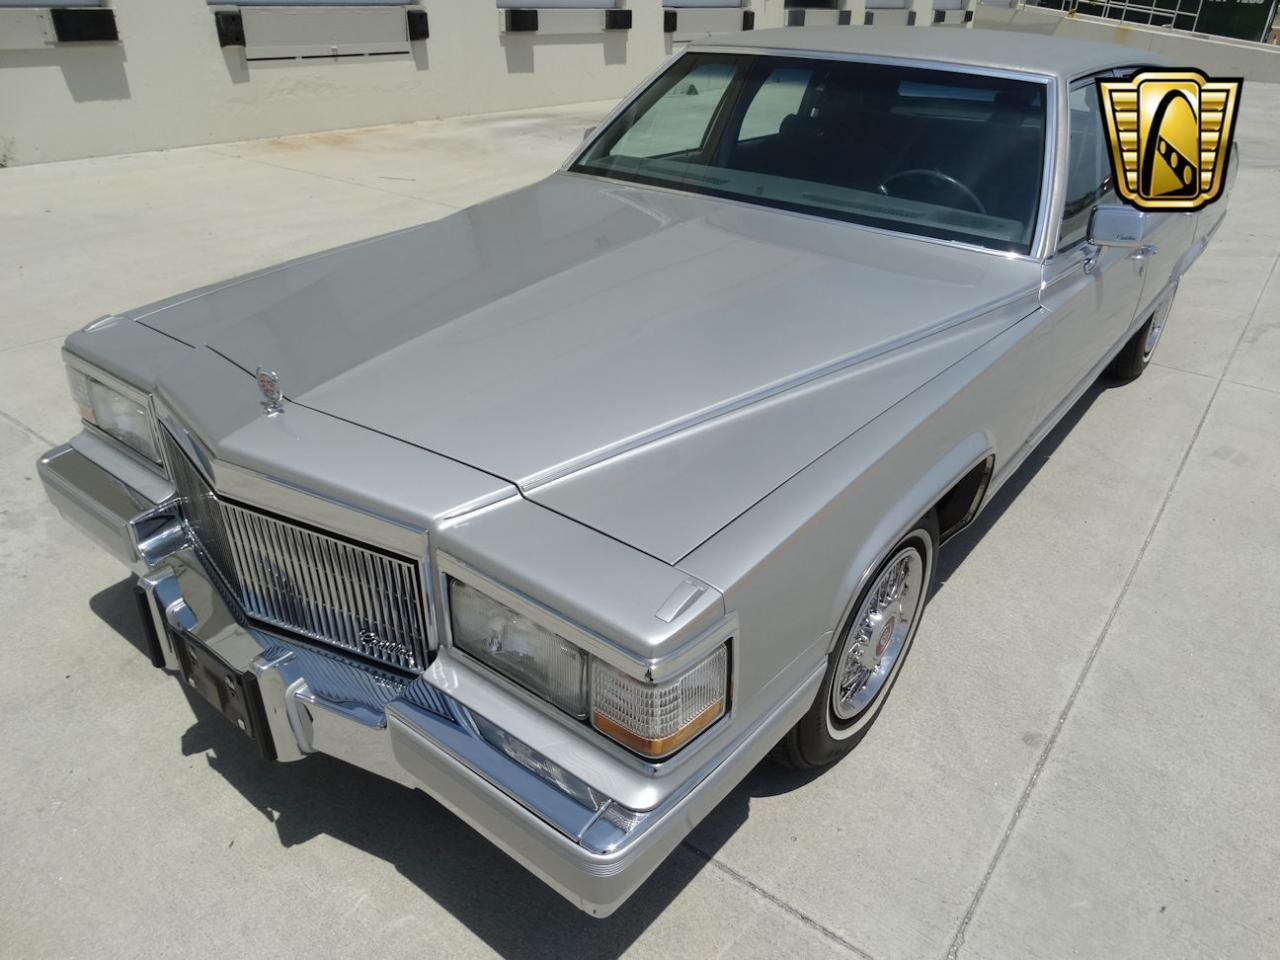 Large Picture of '90 Cadillac Brougham - $22,595.00 Offered by Gateway Classic Cars - Fort Lauderdale - L2WV